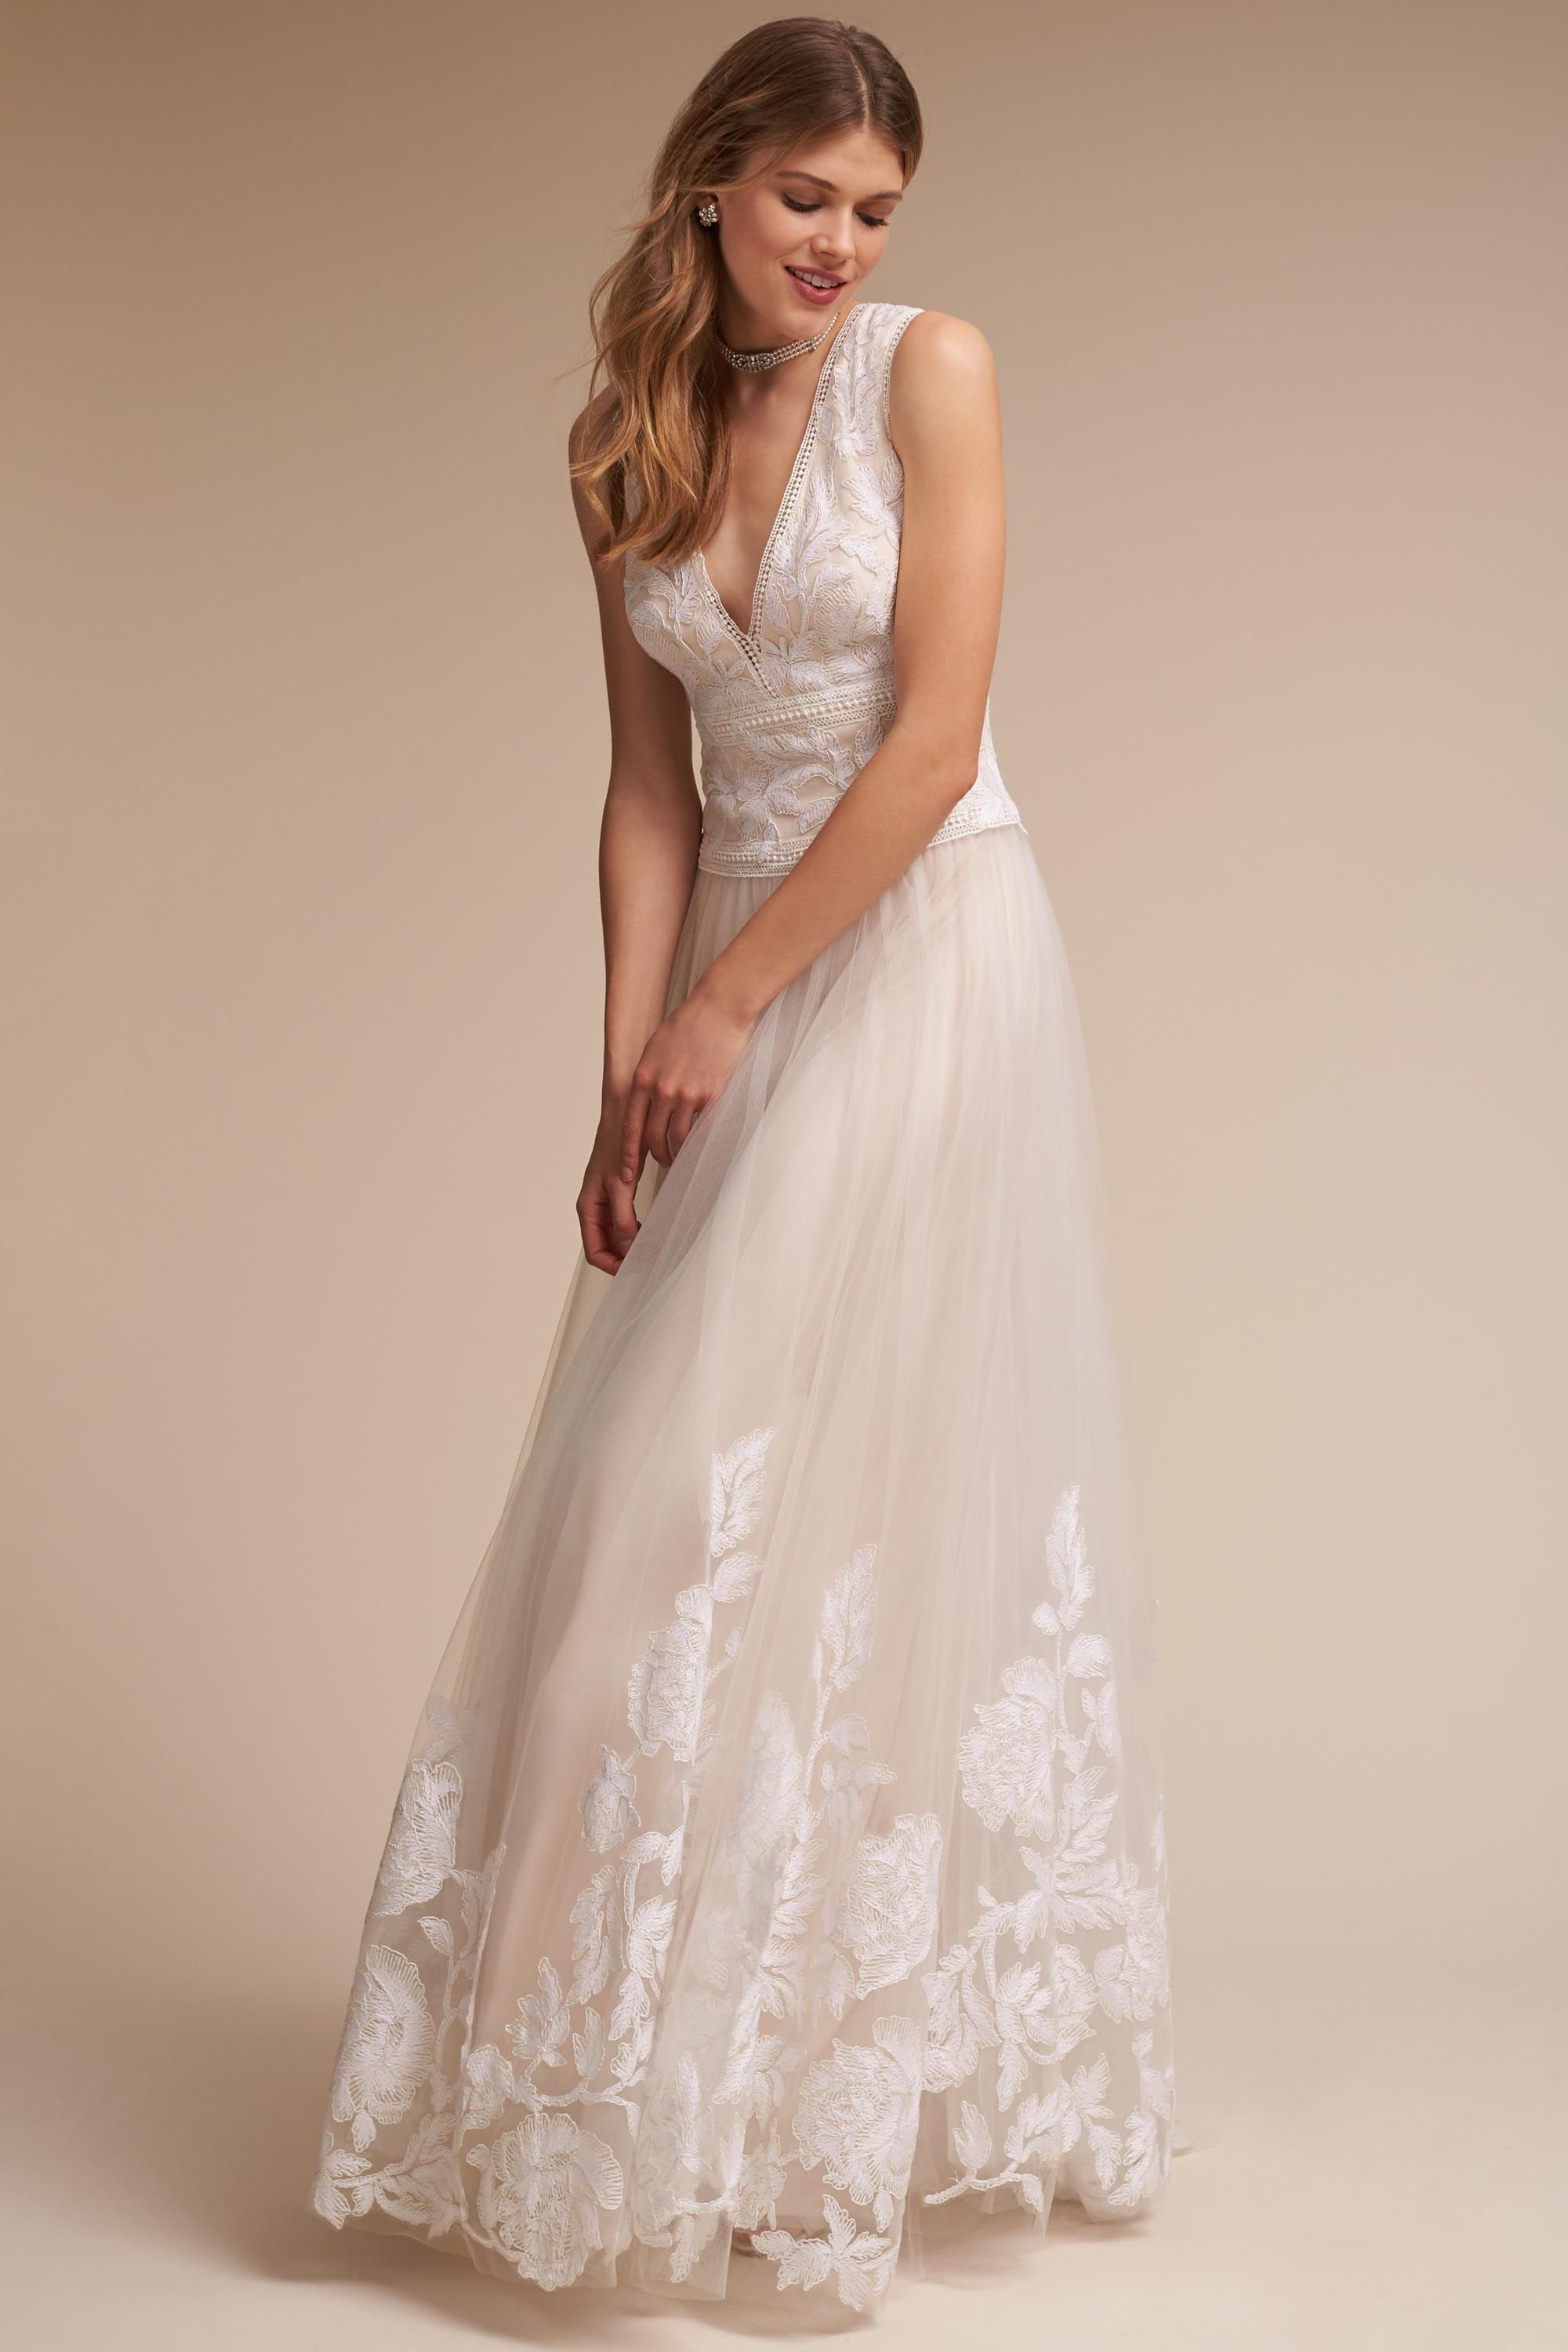 English Rose Gown | Where to Buy BHLDN Wedding Dresses